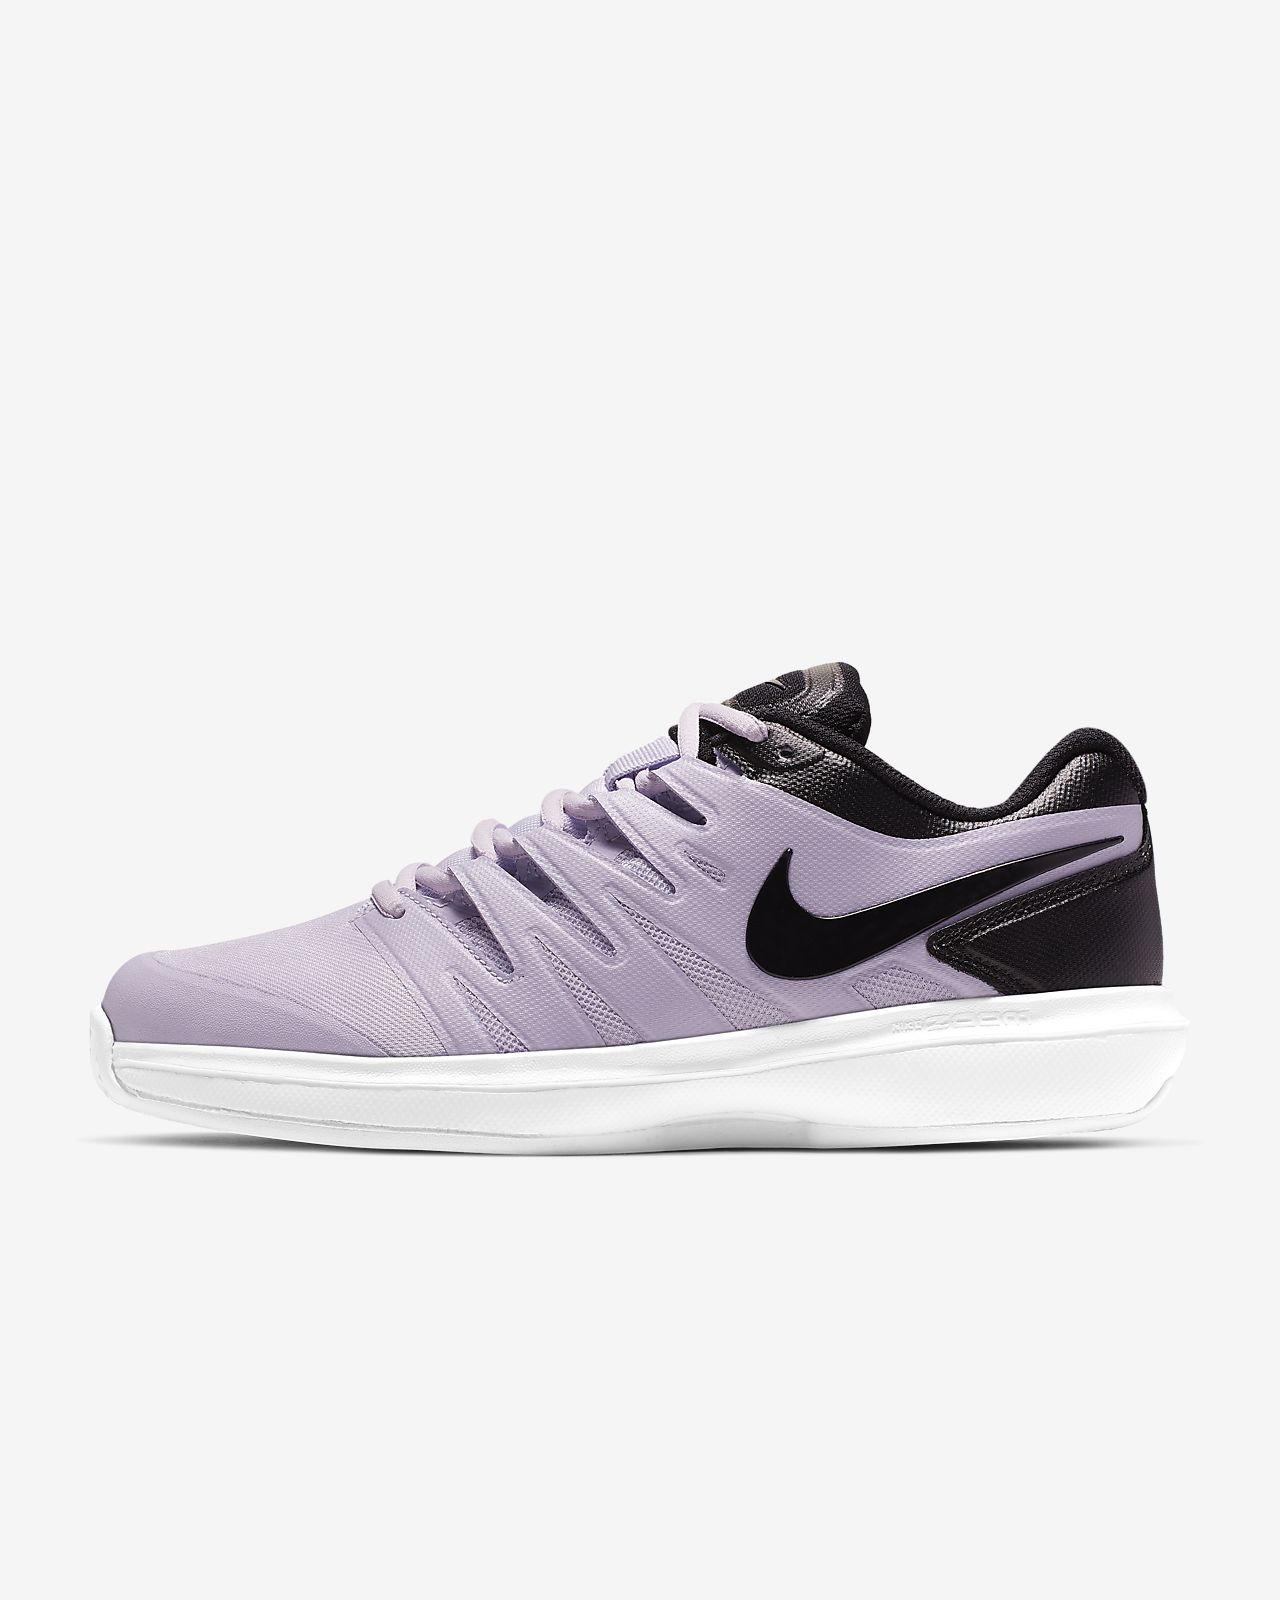 newest 57d7d 91355 ... NikeCourt Air Zoom Prestige Women s Hard Court Tennis Shoe